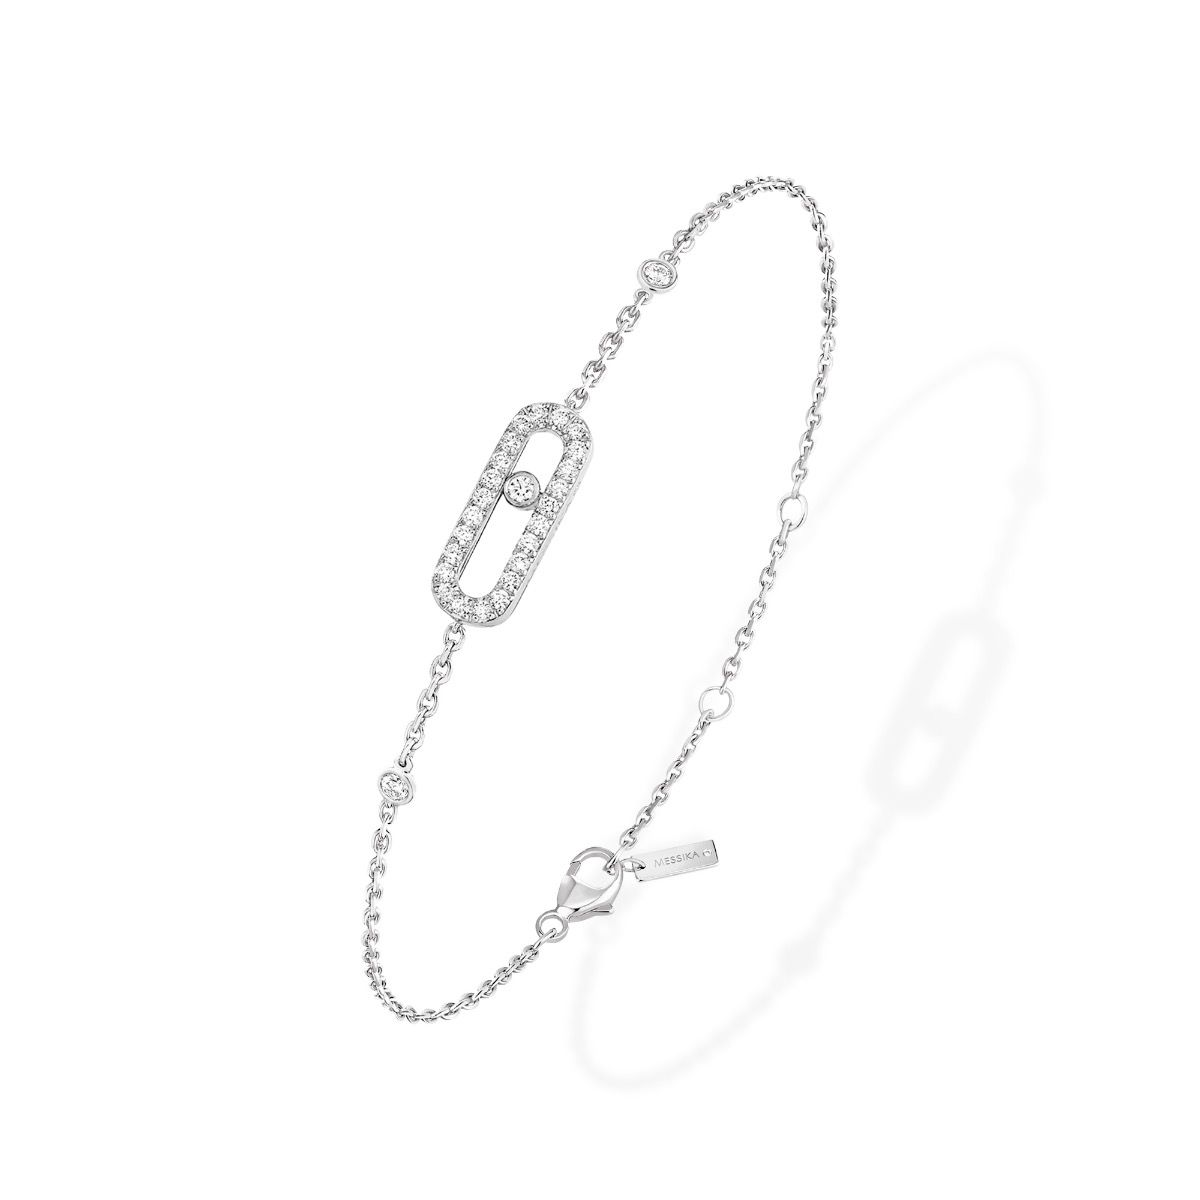 Move Uno Pavé Bracelet - White Gold